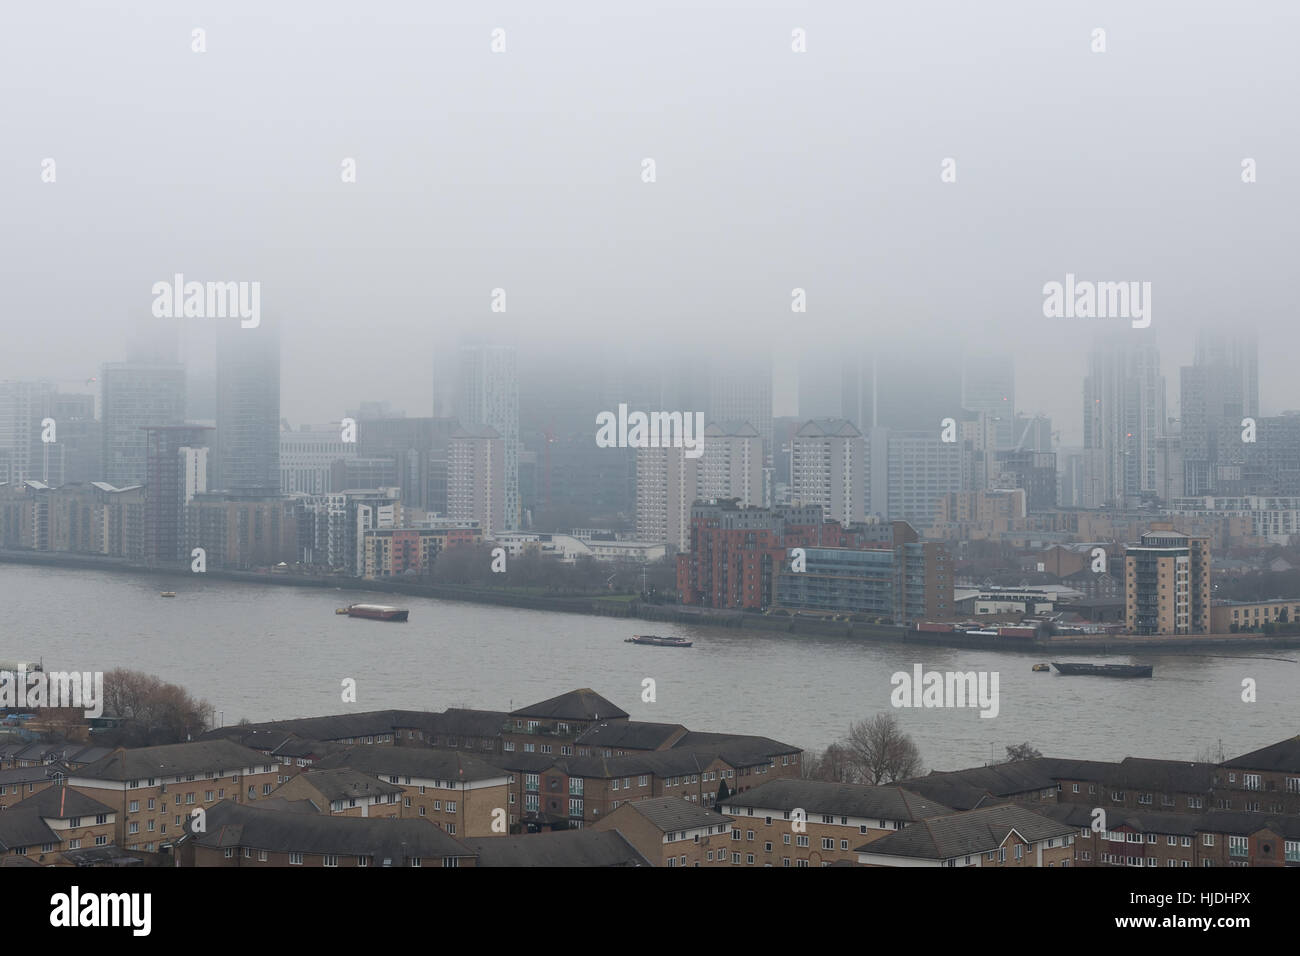 London, UK. 25th January, 2017. UK Weather: Heavy fog continues over London and Canary Wharf business park buildings Stock Photo